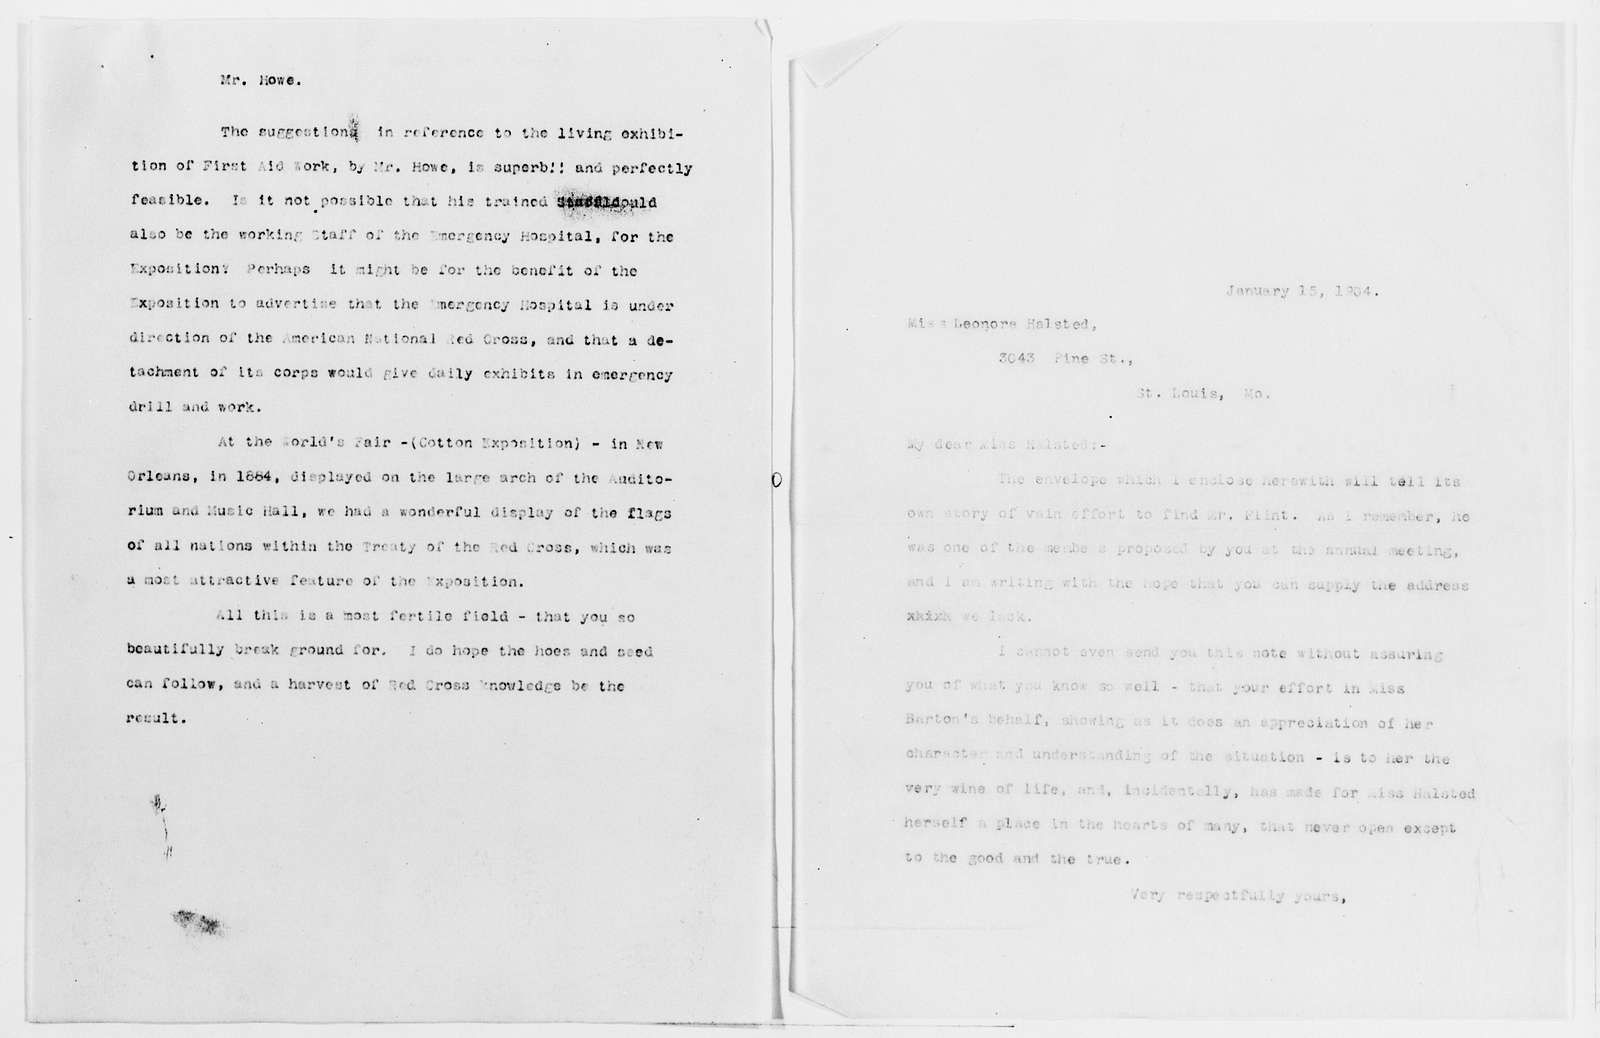 Clara Barton Papers: Red Cross File, 1863-1957; American National Red Cross, 1878-1957; Expositions; Louisiana Purchase Exposition, St. Louis, Mo., 1904